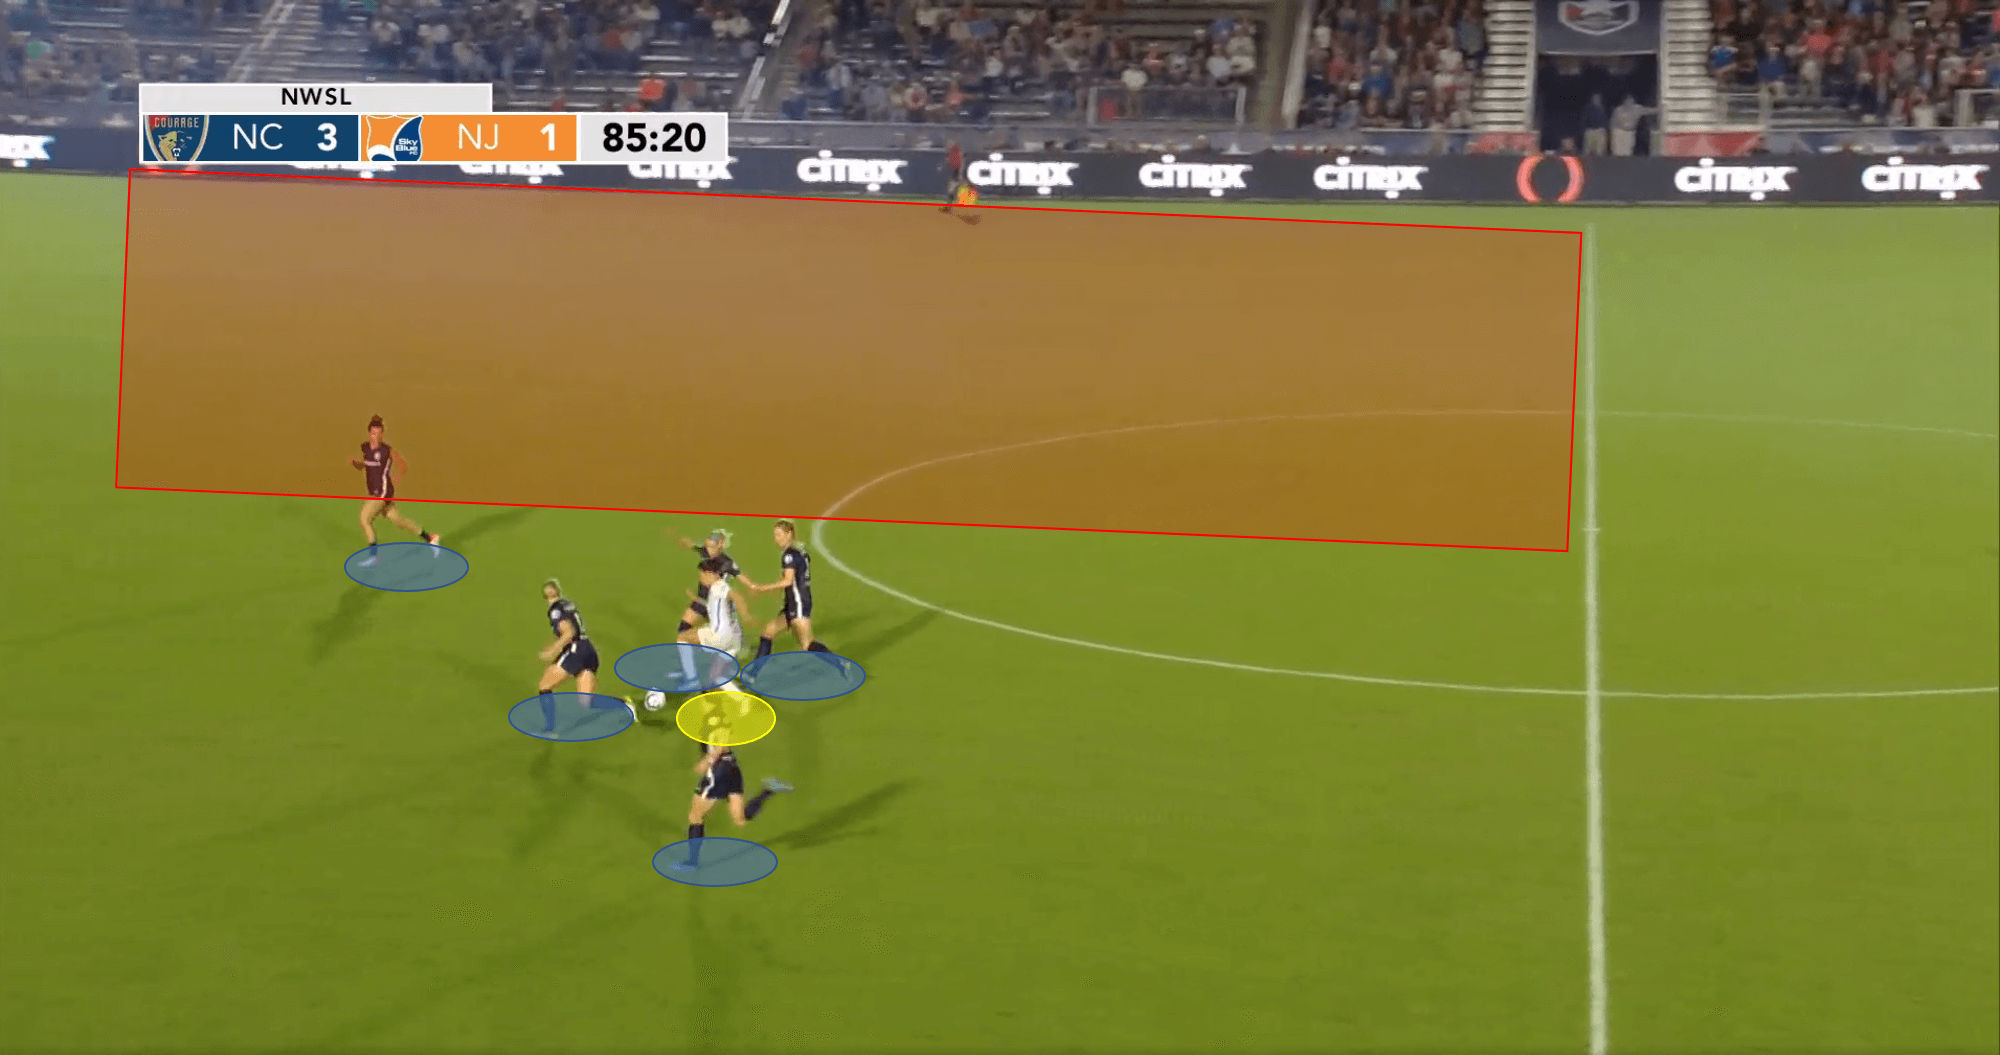 NWSL 2019: North Carolina Courage vs Sky Blue - Tactical Analysis tactics